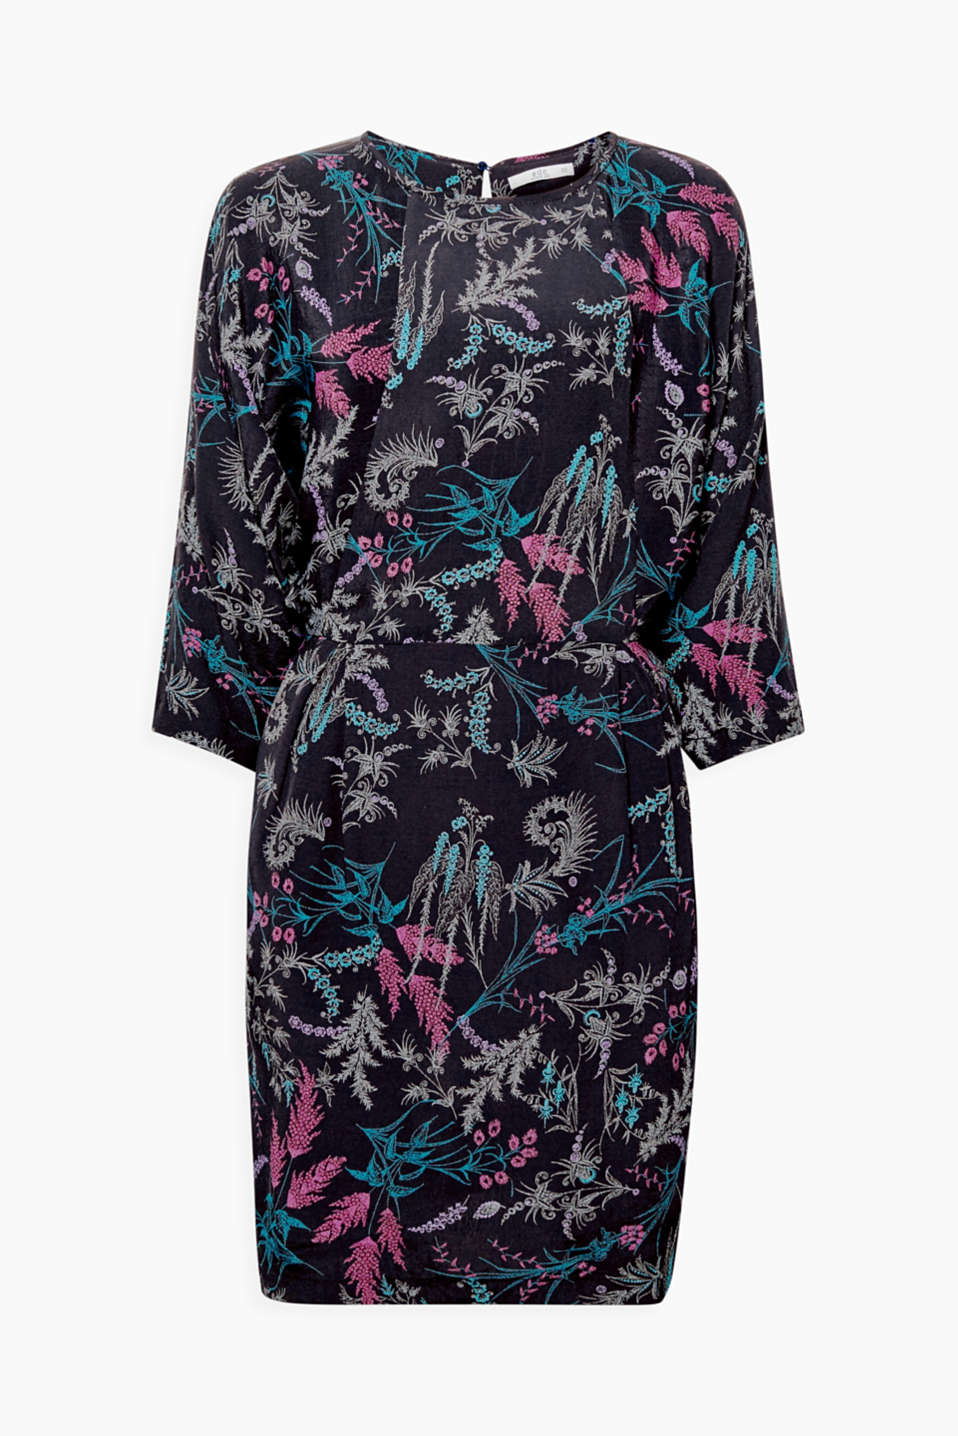 The adorable floral pattern and wide, batwing sleeves make this floaty dress super stylish!